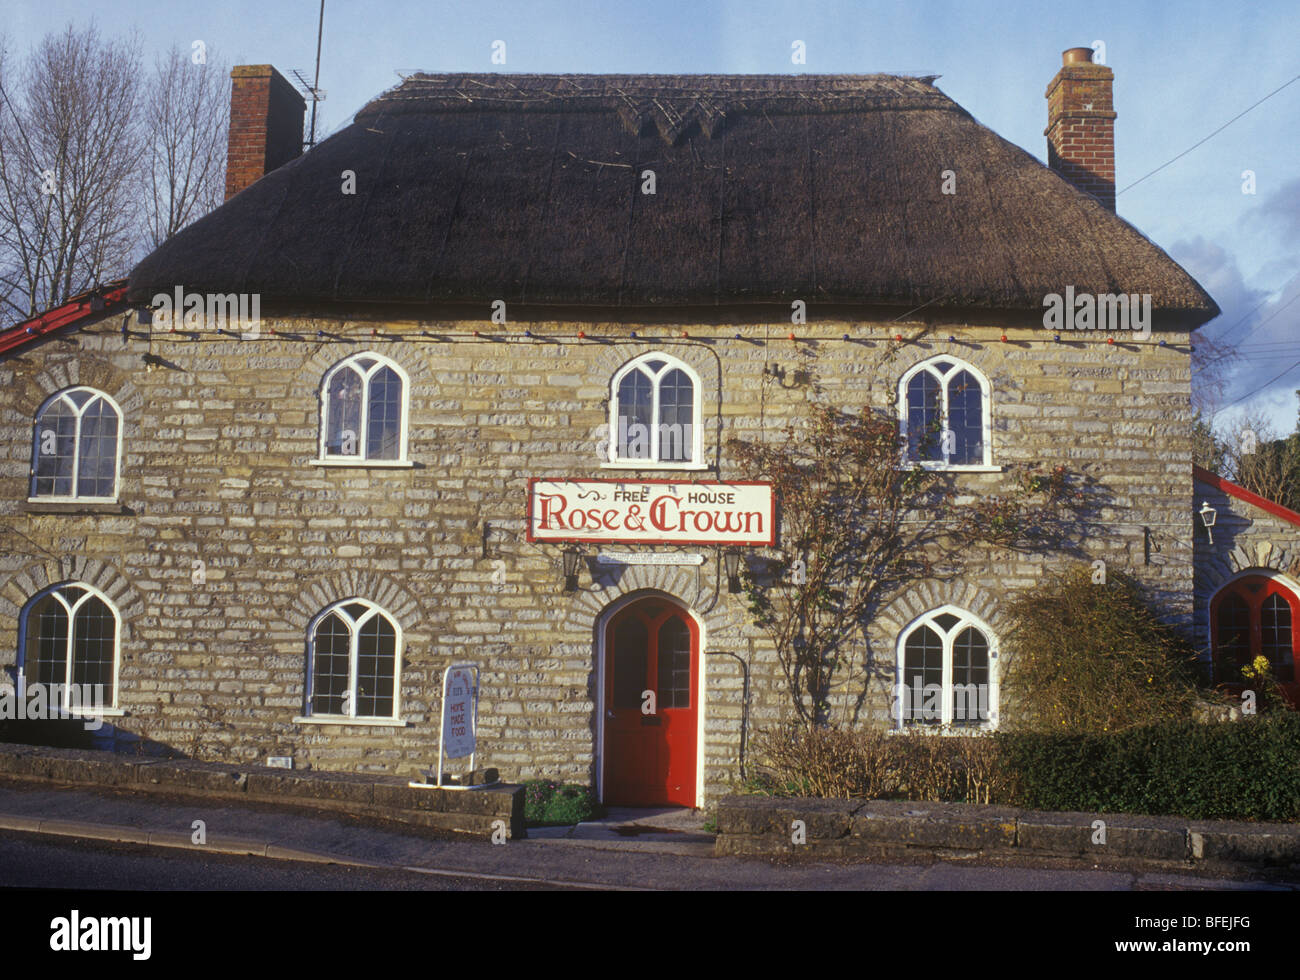 Huish Episcopi Somerset UK Rose & Crown traditional pub free house early 19th century stone thatched roof gothick - Stock Image